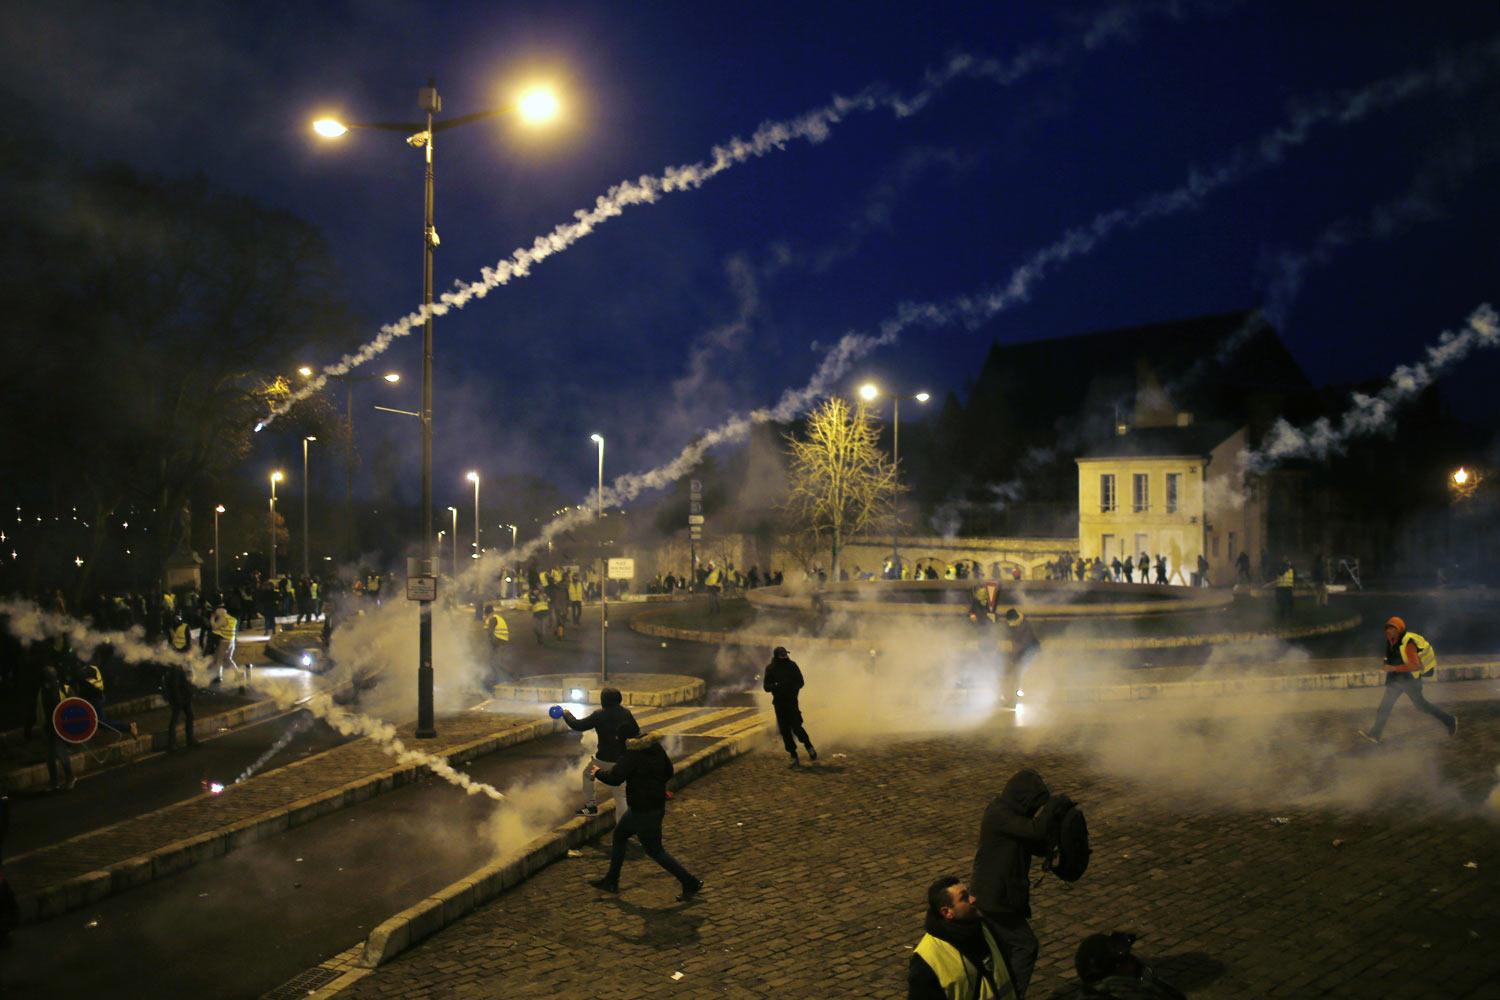 """Police fire tear gas grenades during a demonstration in Bourges, central France, Saturday, Jan. 12, 2019. The """"yellow vest"""" movement is protesting President Emmanuel Macron's policies, seen as favoring the rich. (AP Photo/Rafael Yaghobzadeh)"""